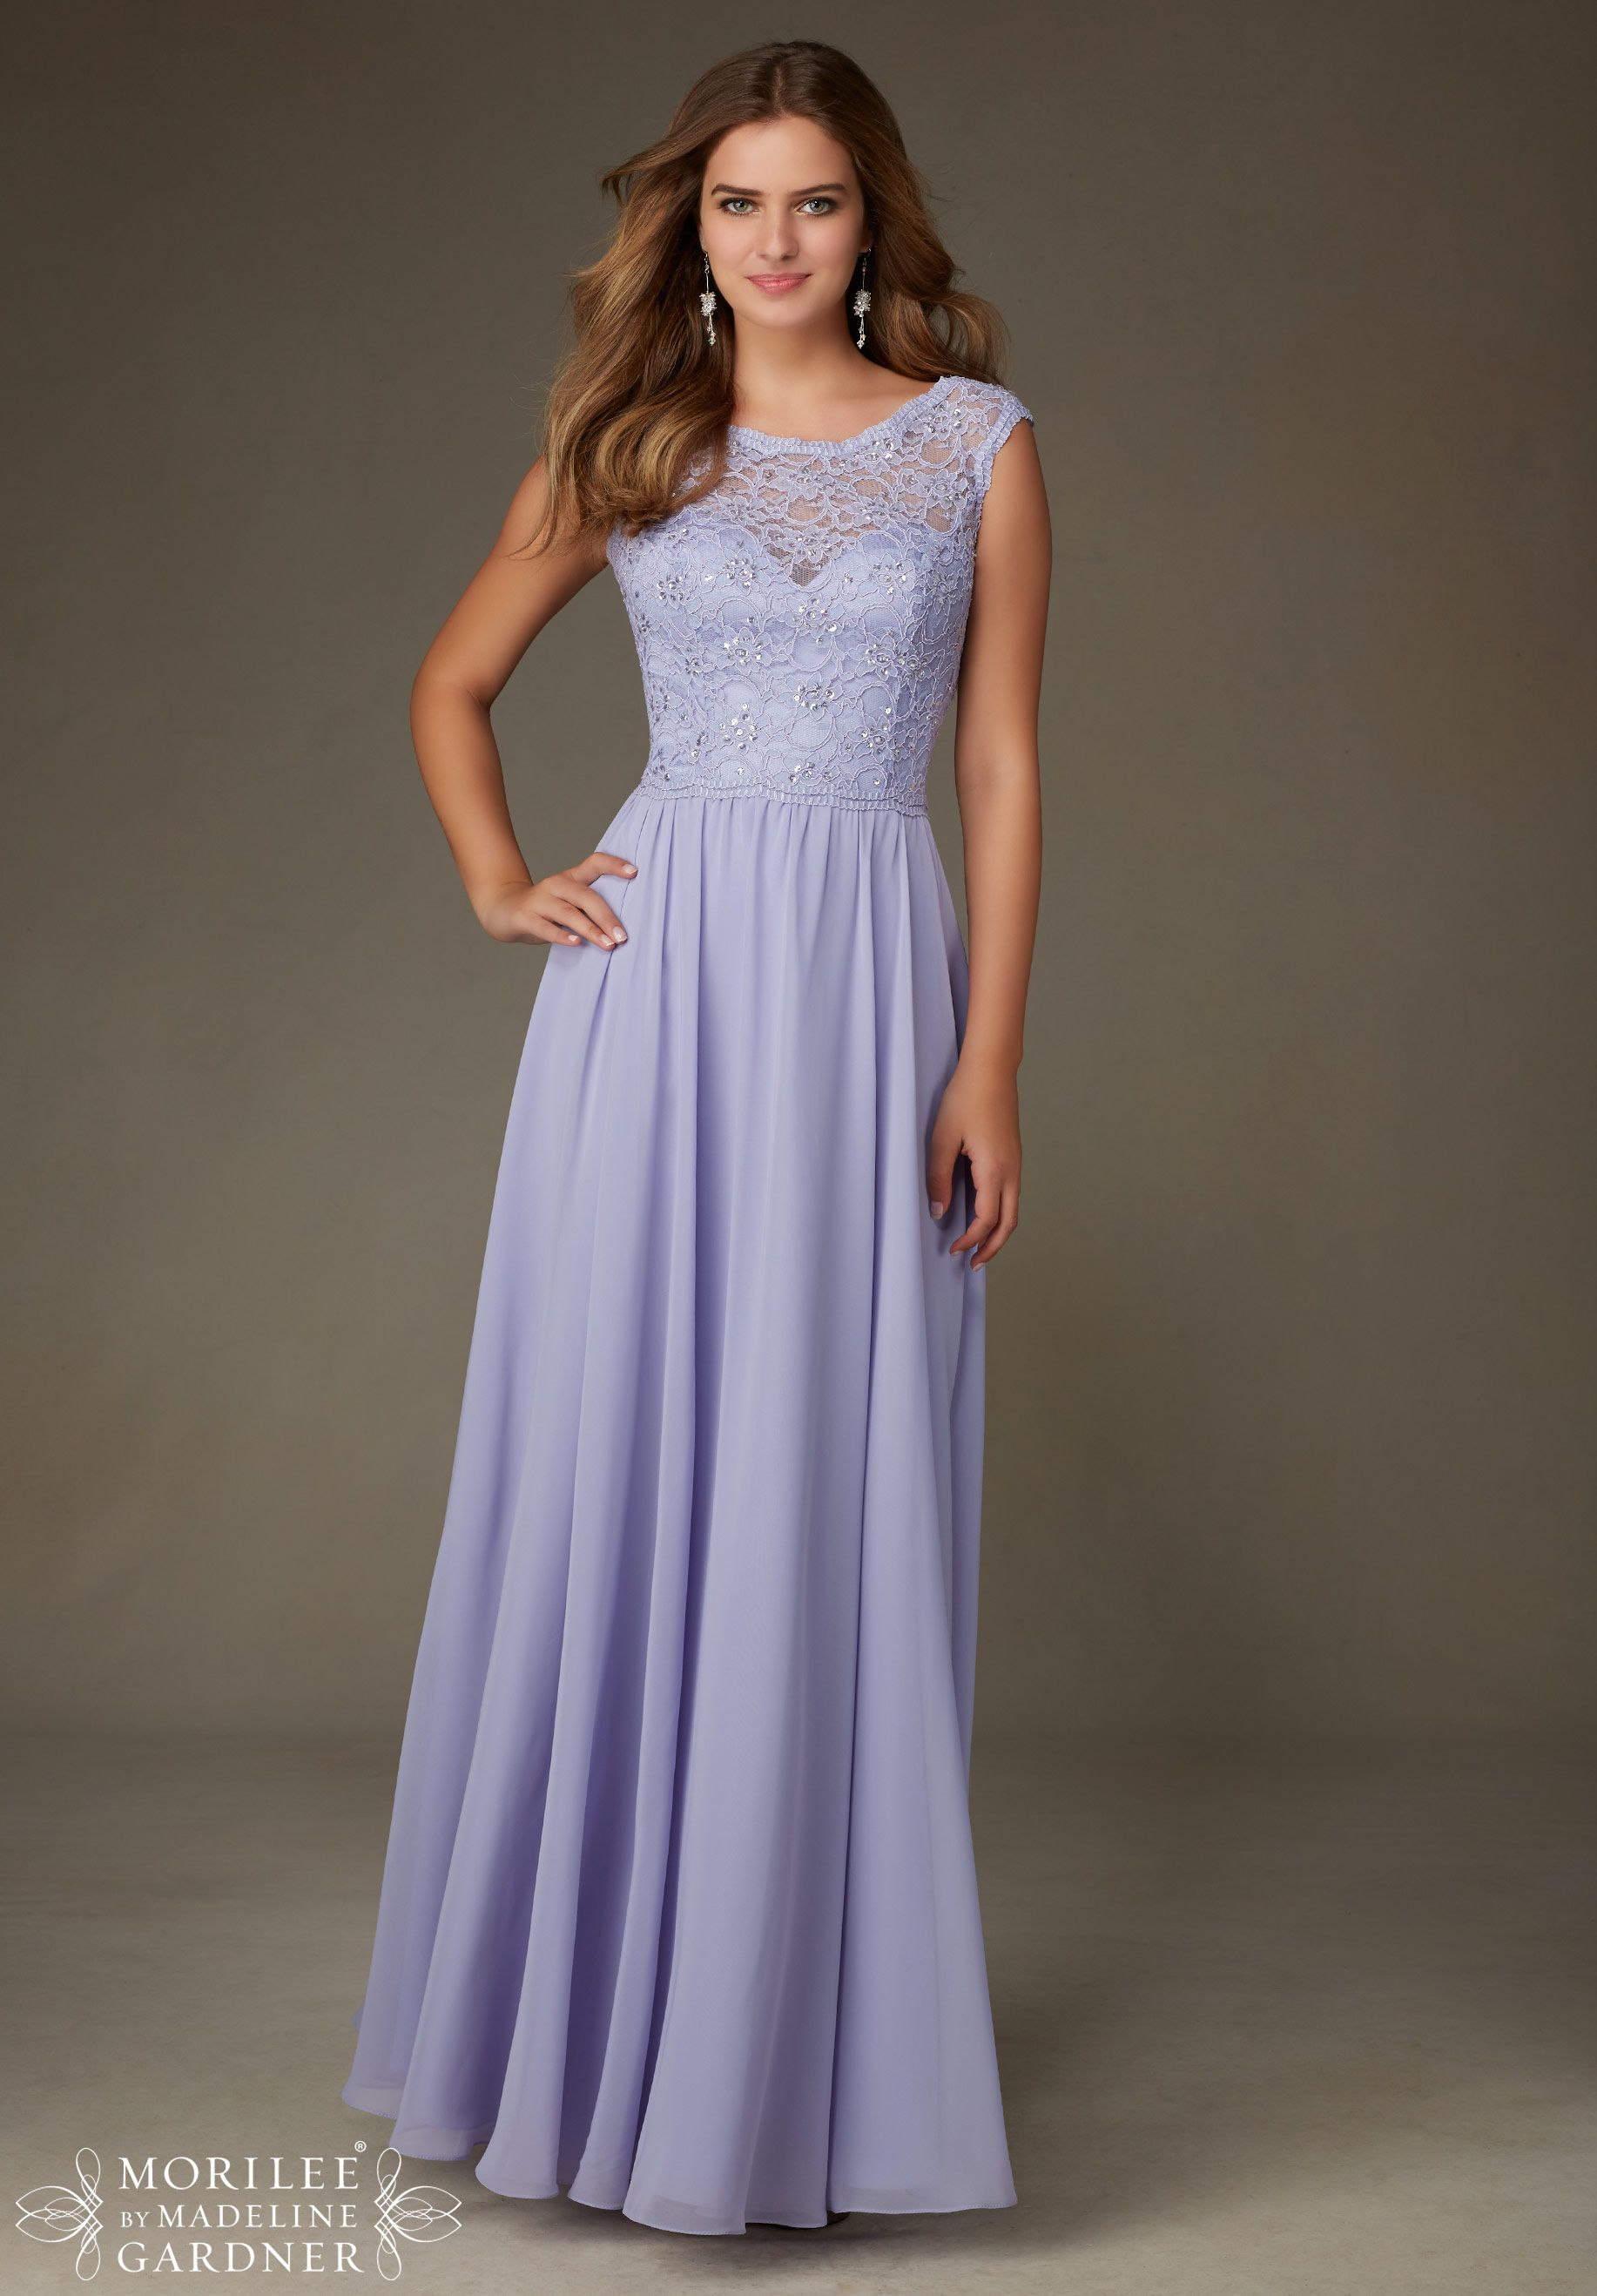 Bridesmaids dresses beaded lace with chiffon available in all mori bridesmaid dress styles ombrellifo Images